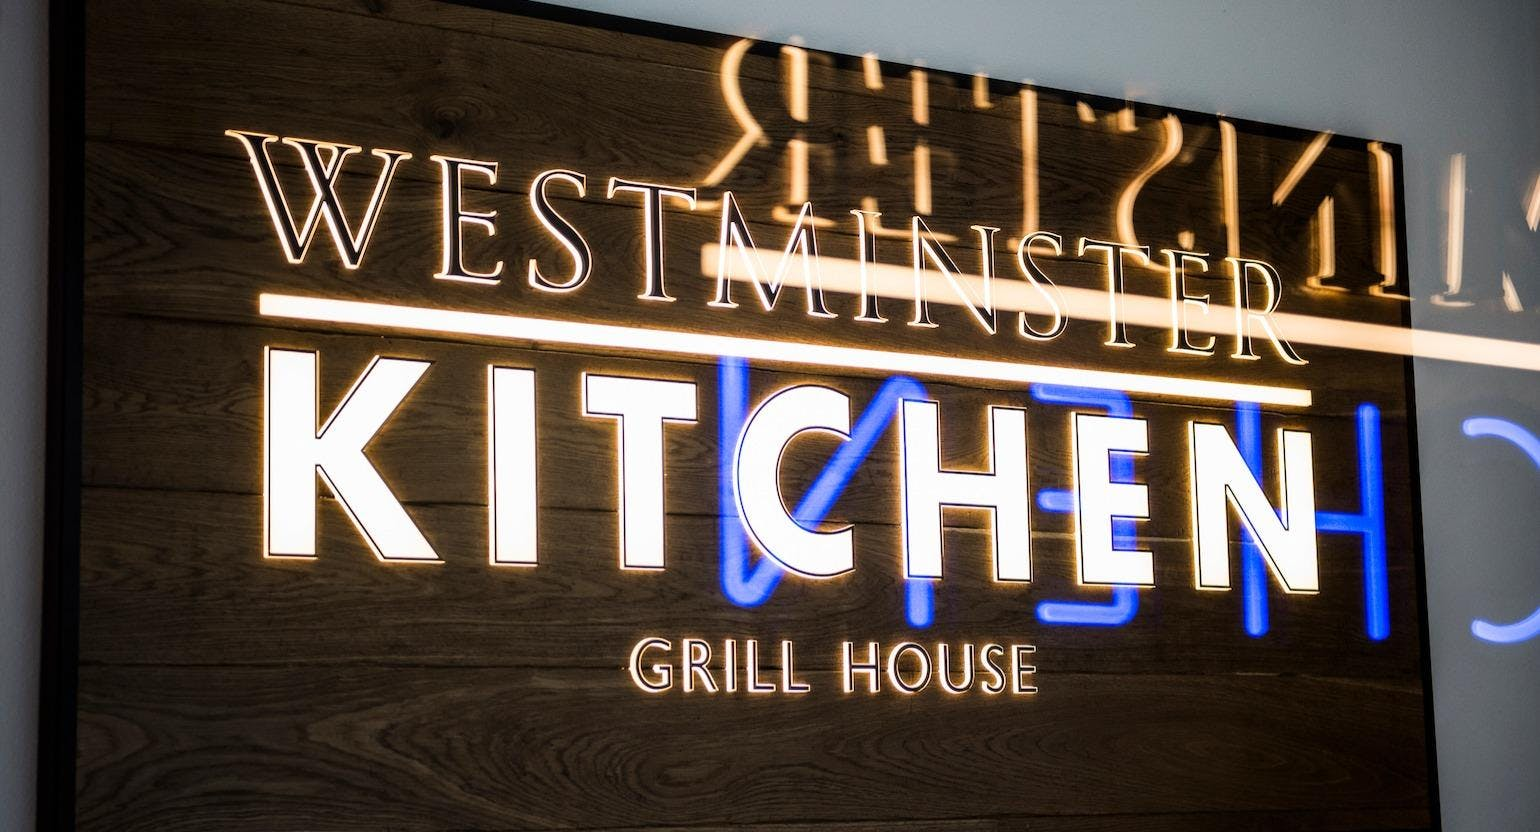 Westminster Kitchen Grill House